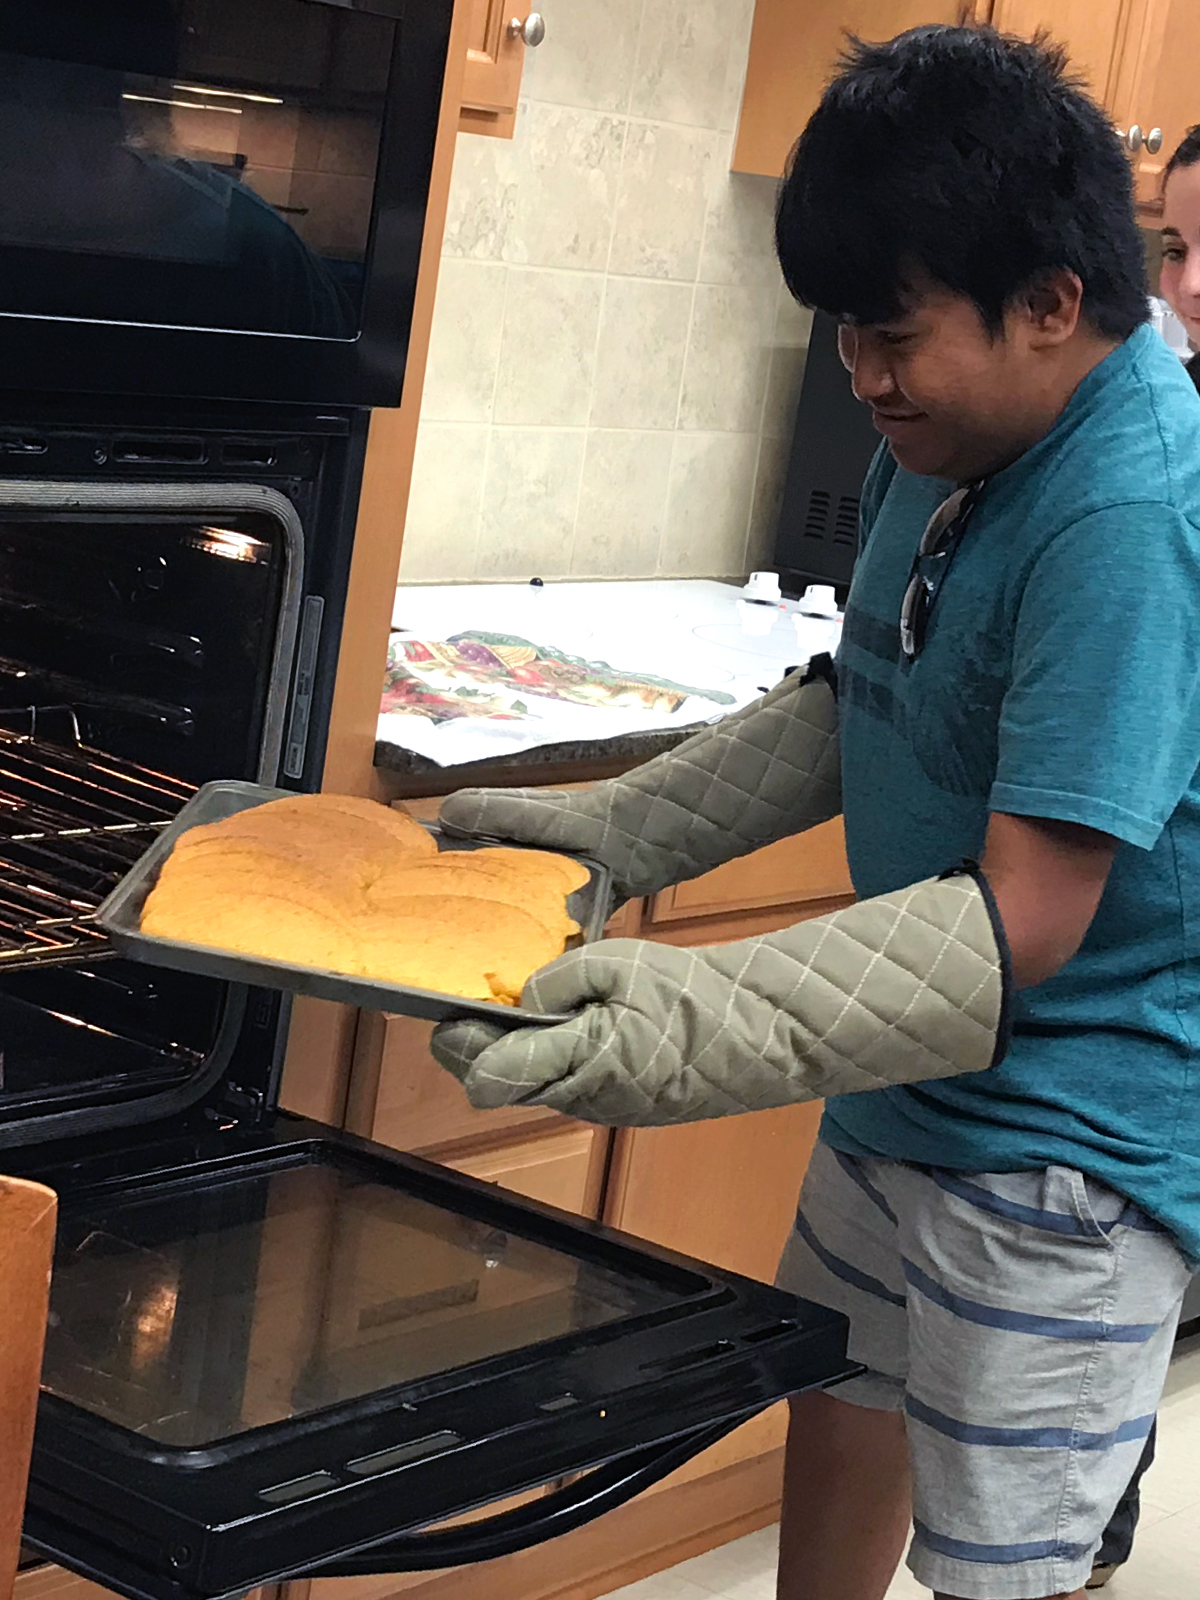 an image of transition student Enrique in the kitchen baking bread